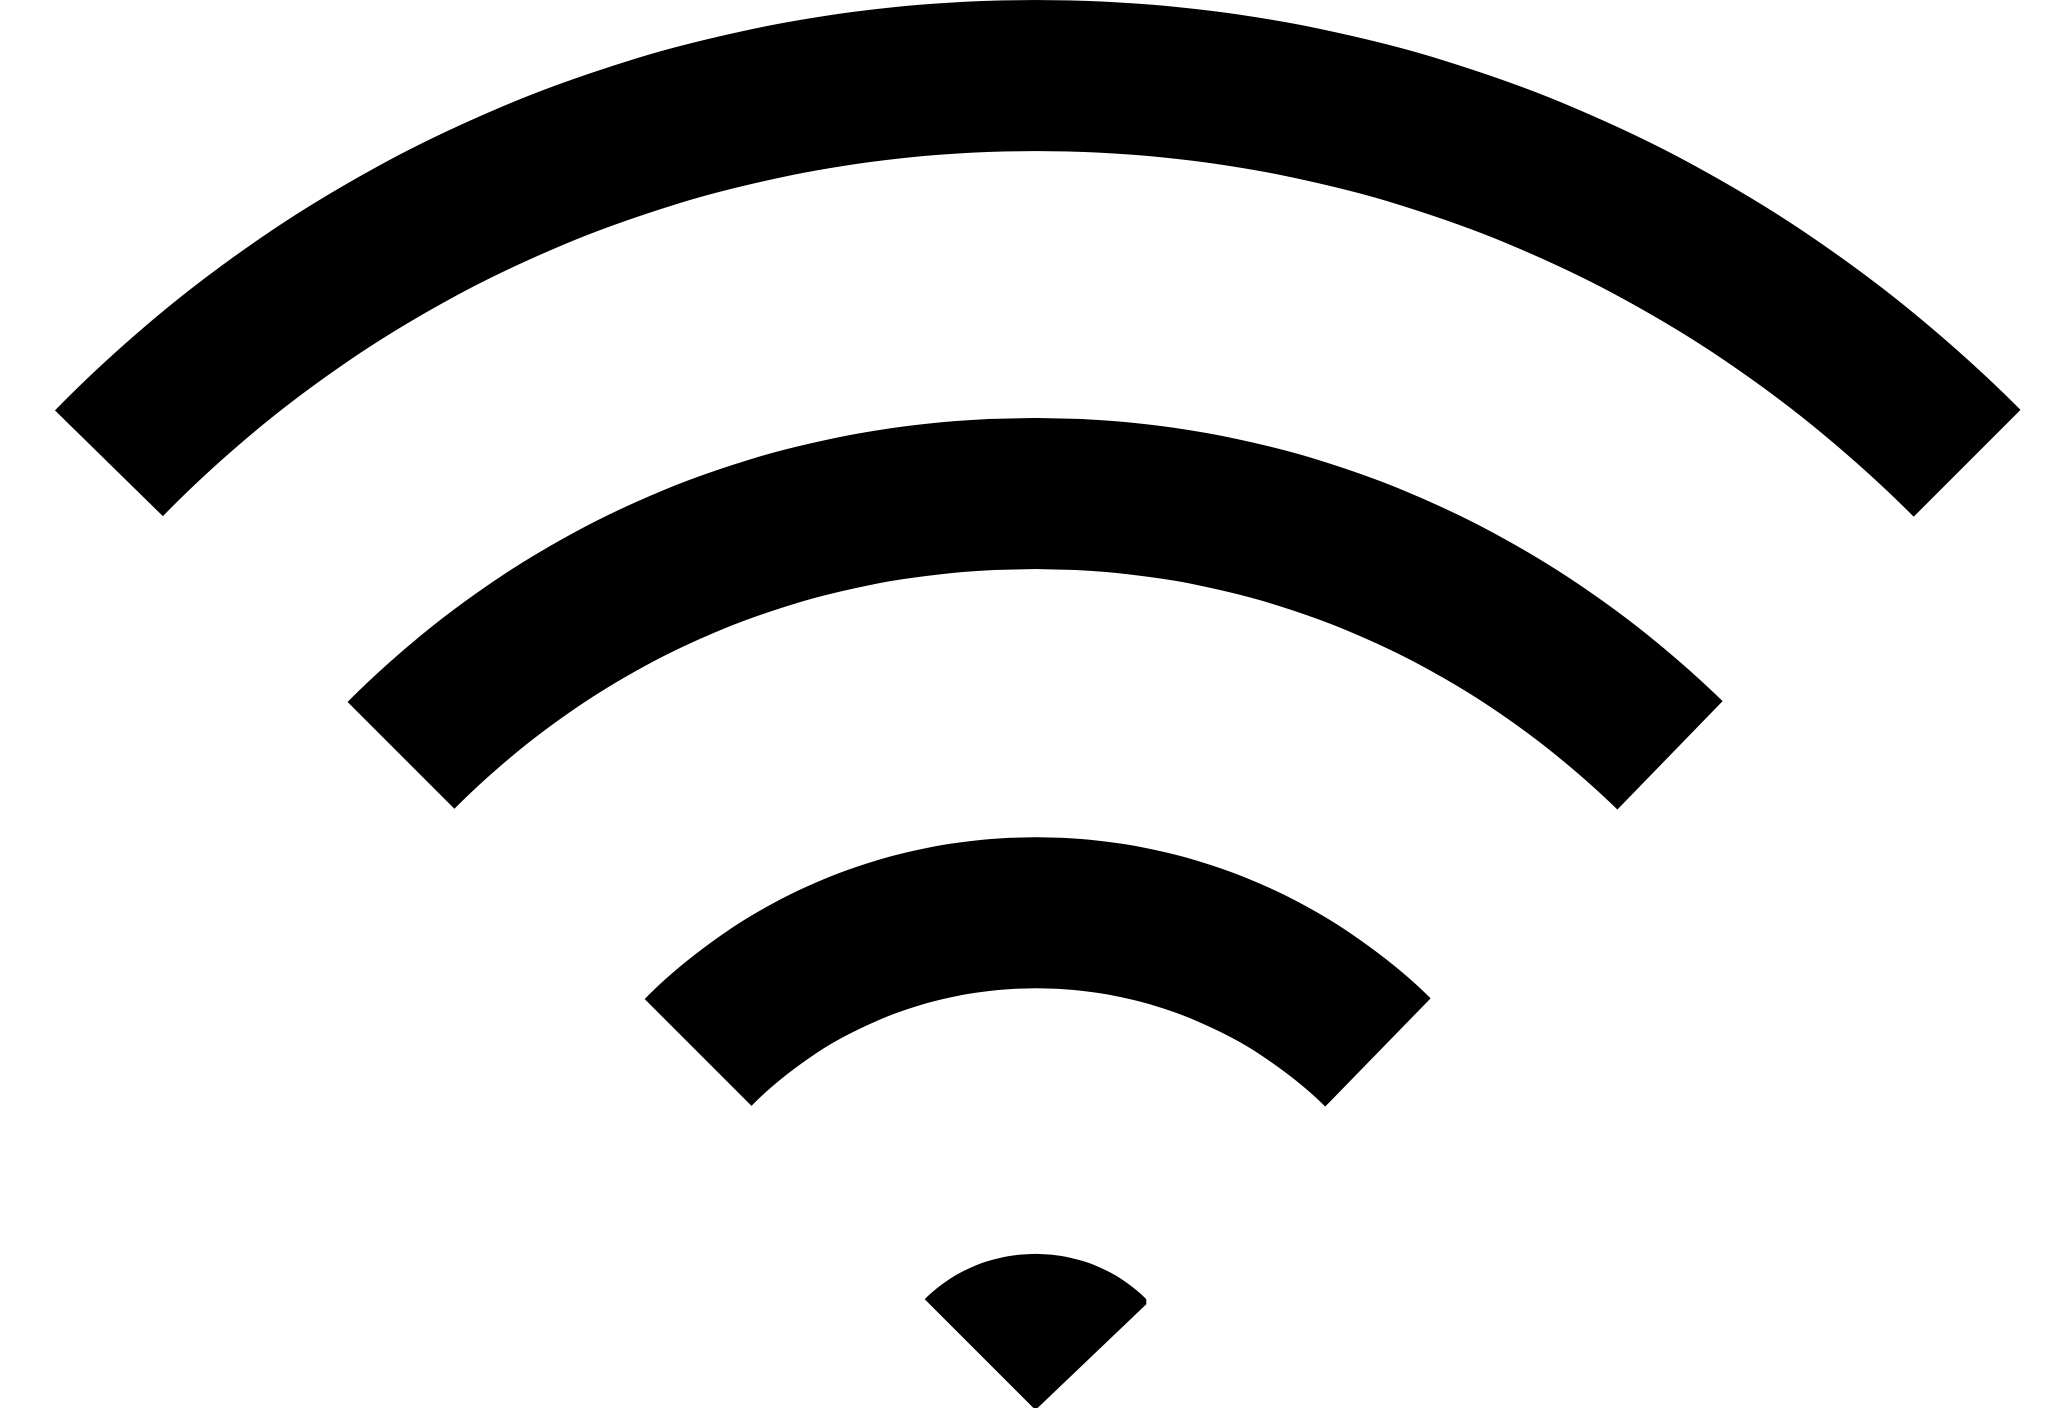 epd-wifi-full-png.png